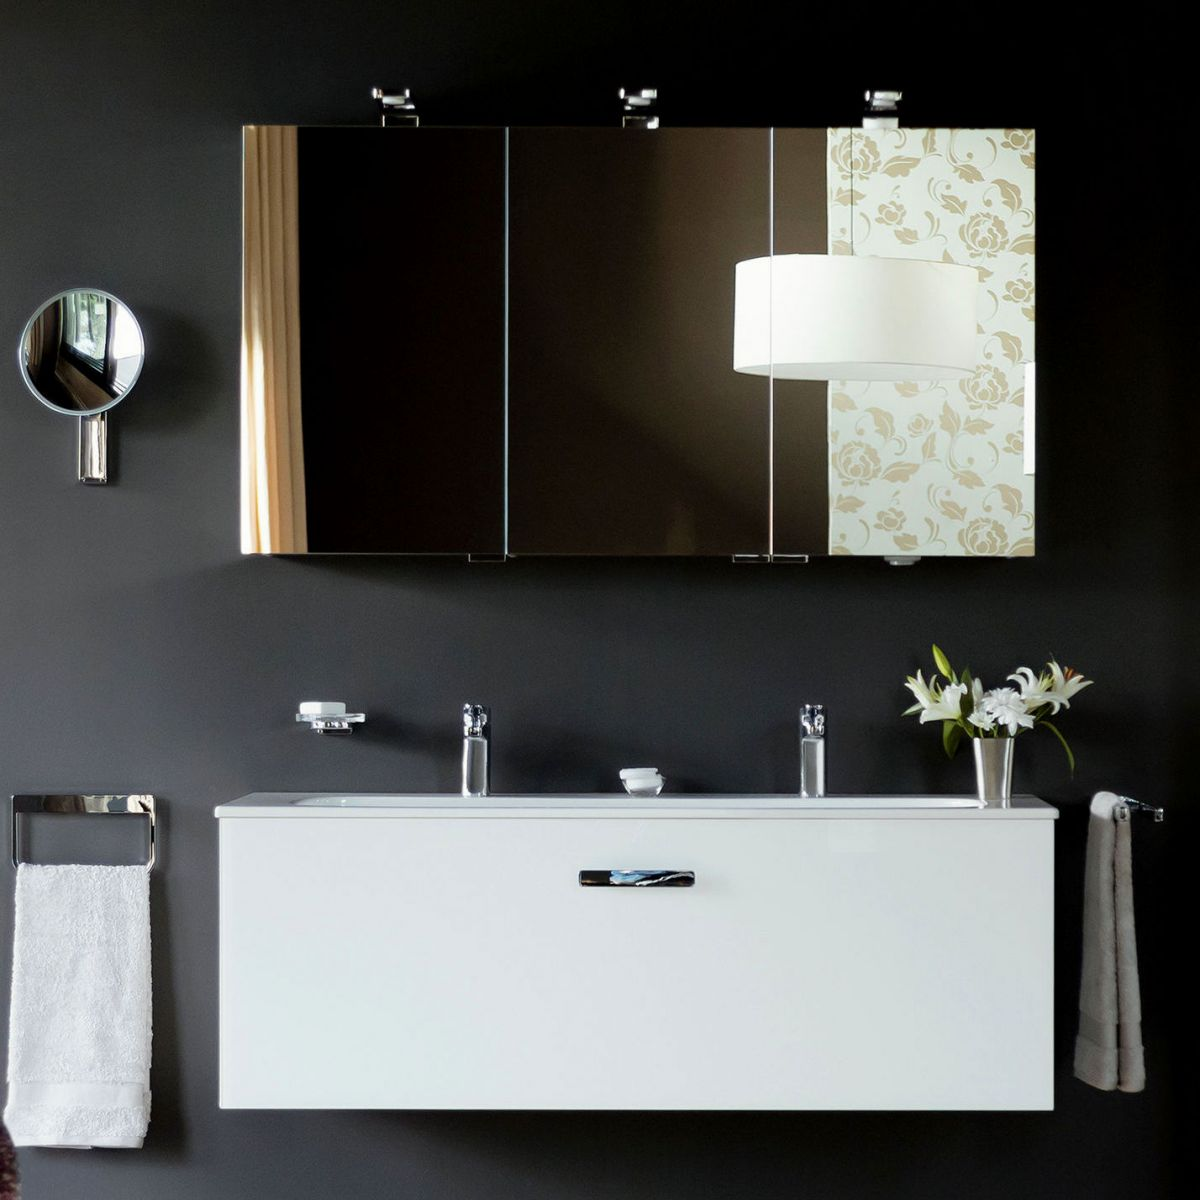 Keuco Royal Universe Illuminated Mirror Cabinet & Bathroom Cabinets Also Available With Mirrors u0026 Lights : UK Bathrooms